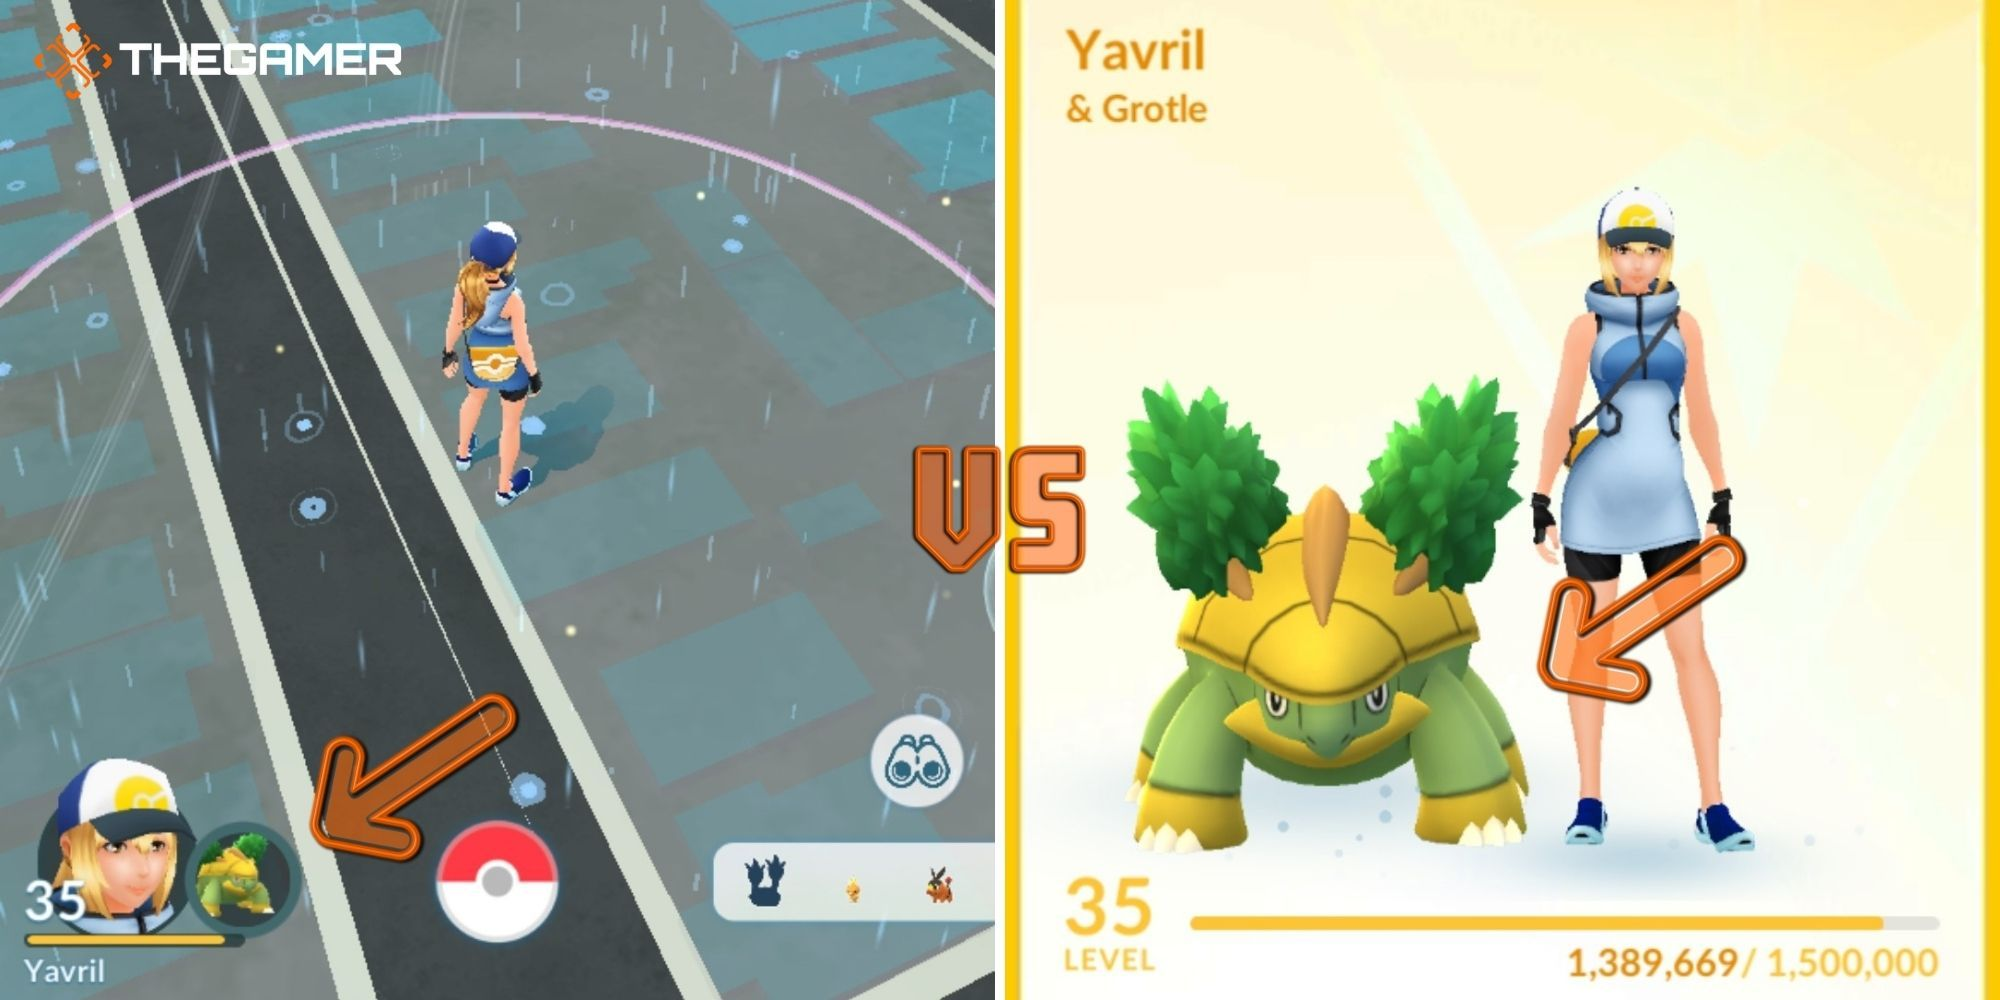 Every Way To Increase Your Buddy Pokemon's Hearts In Pokemon GO